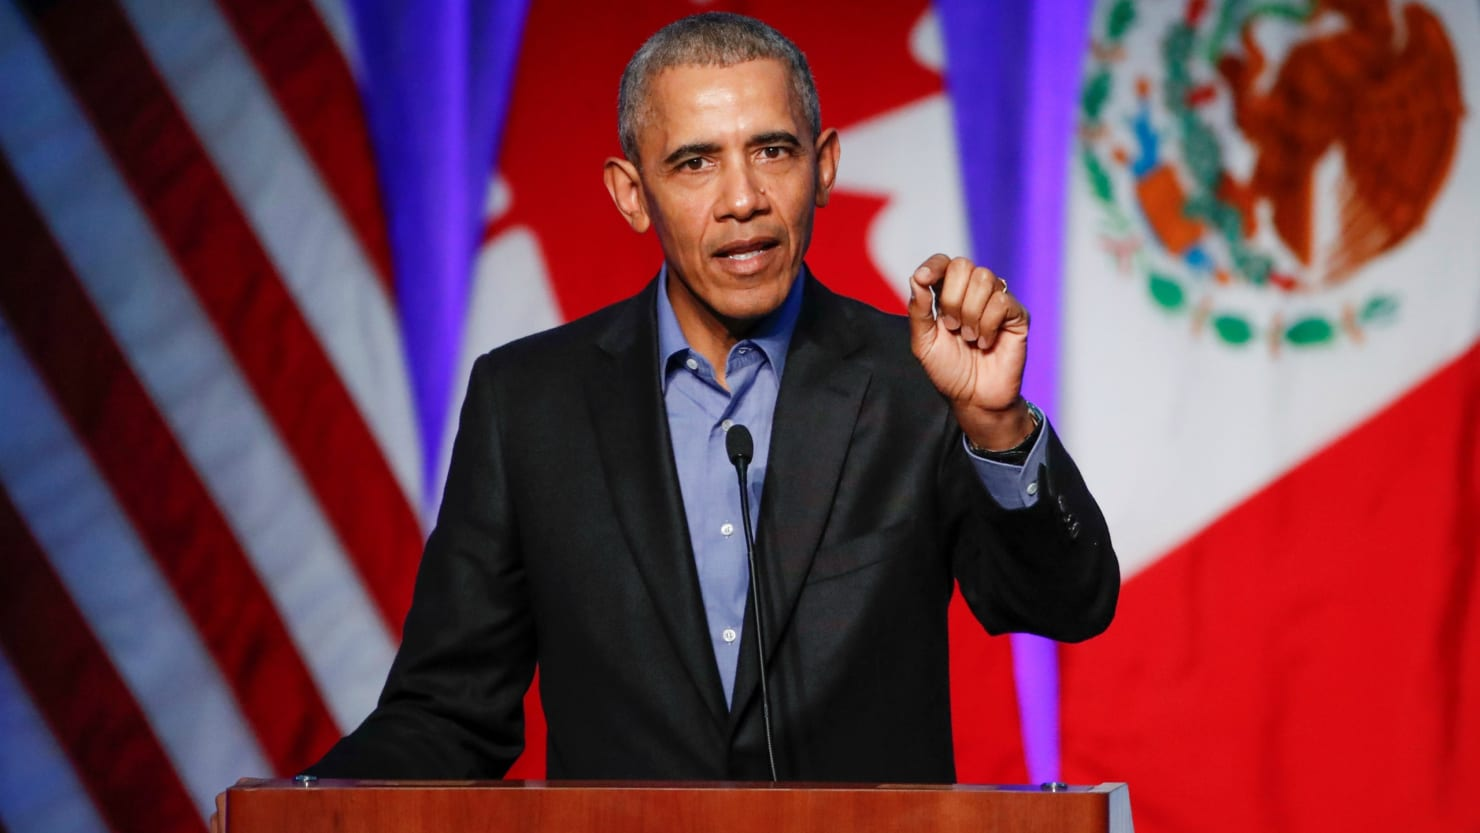 Virginia Elementary School Ditches Confederate Name in Favor of Barack Obama